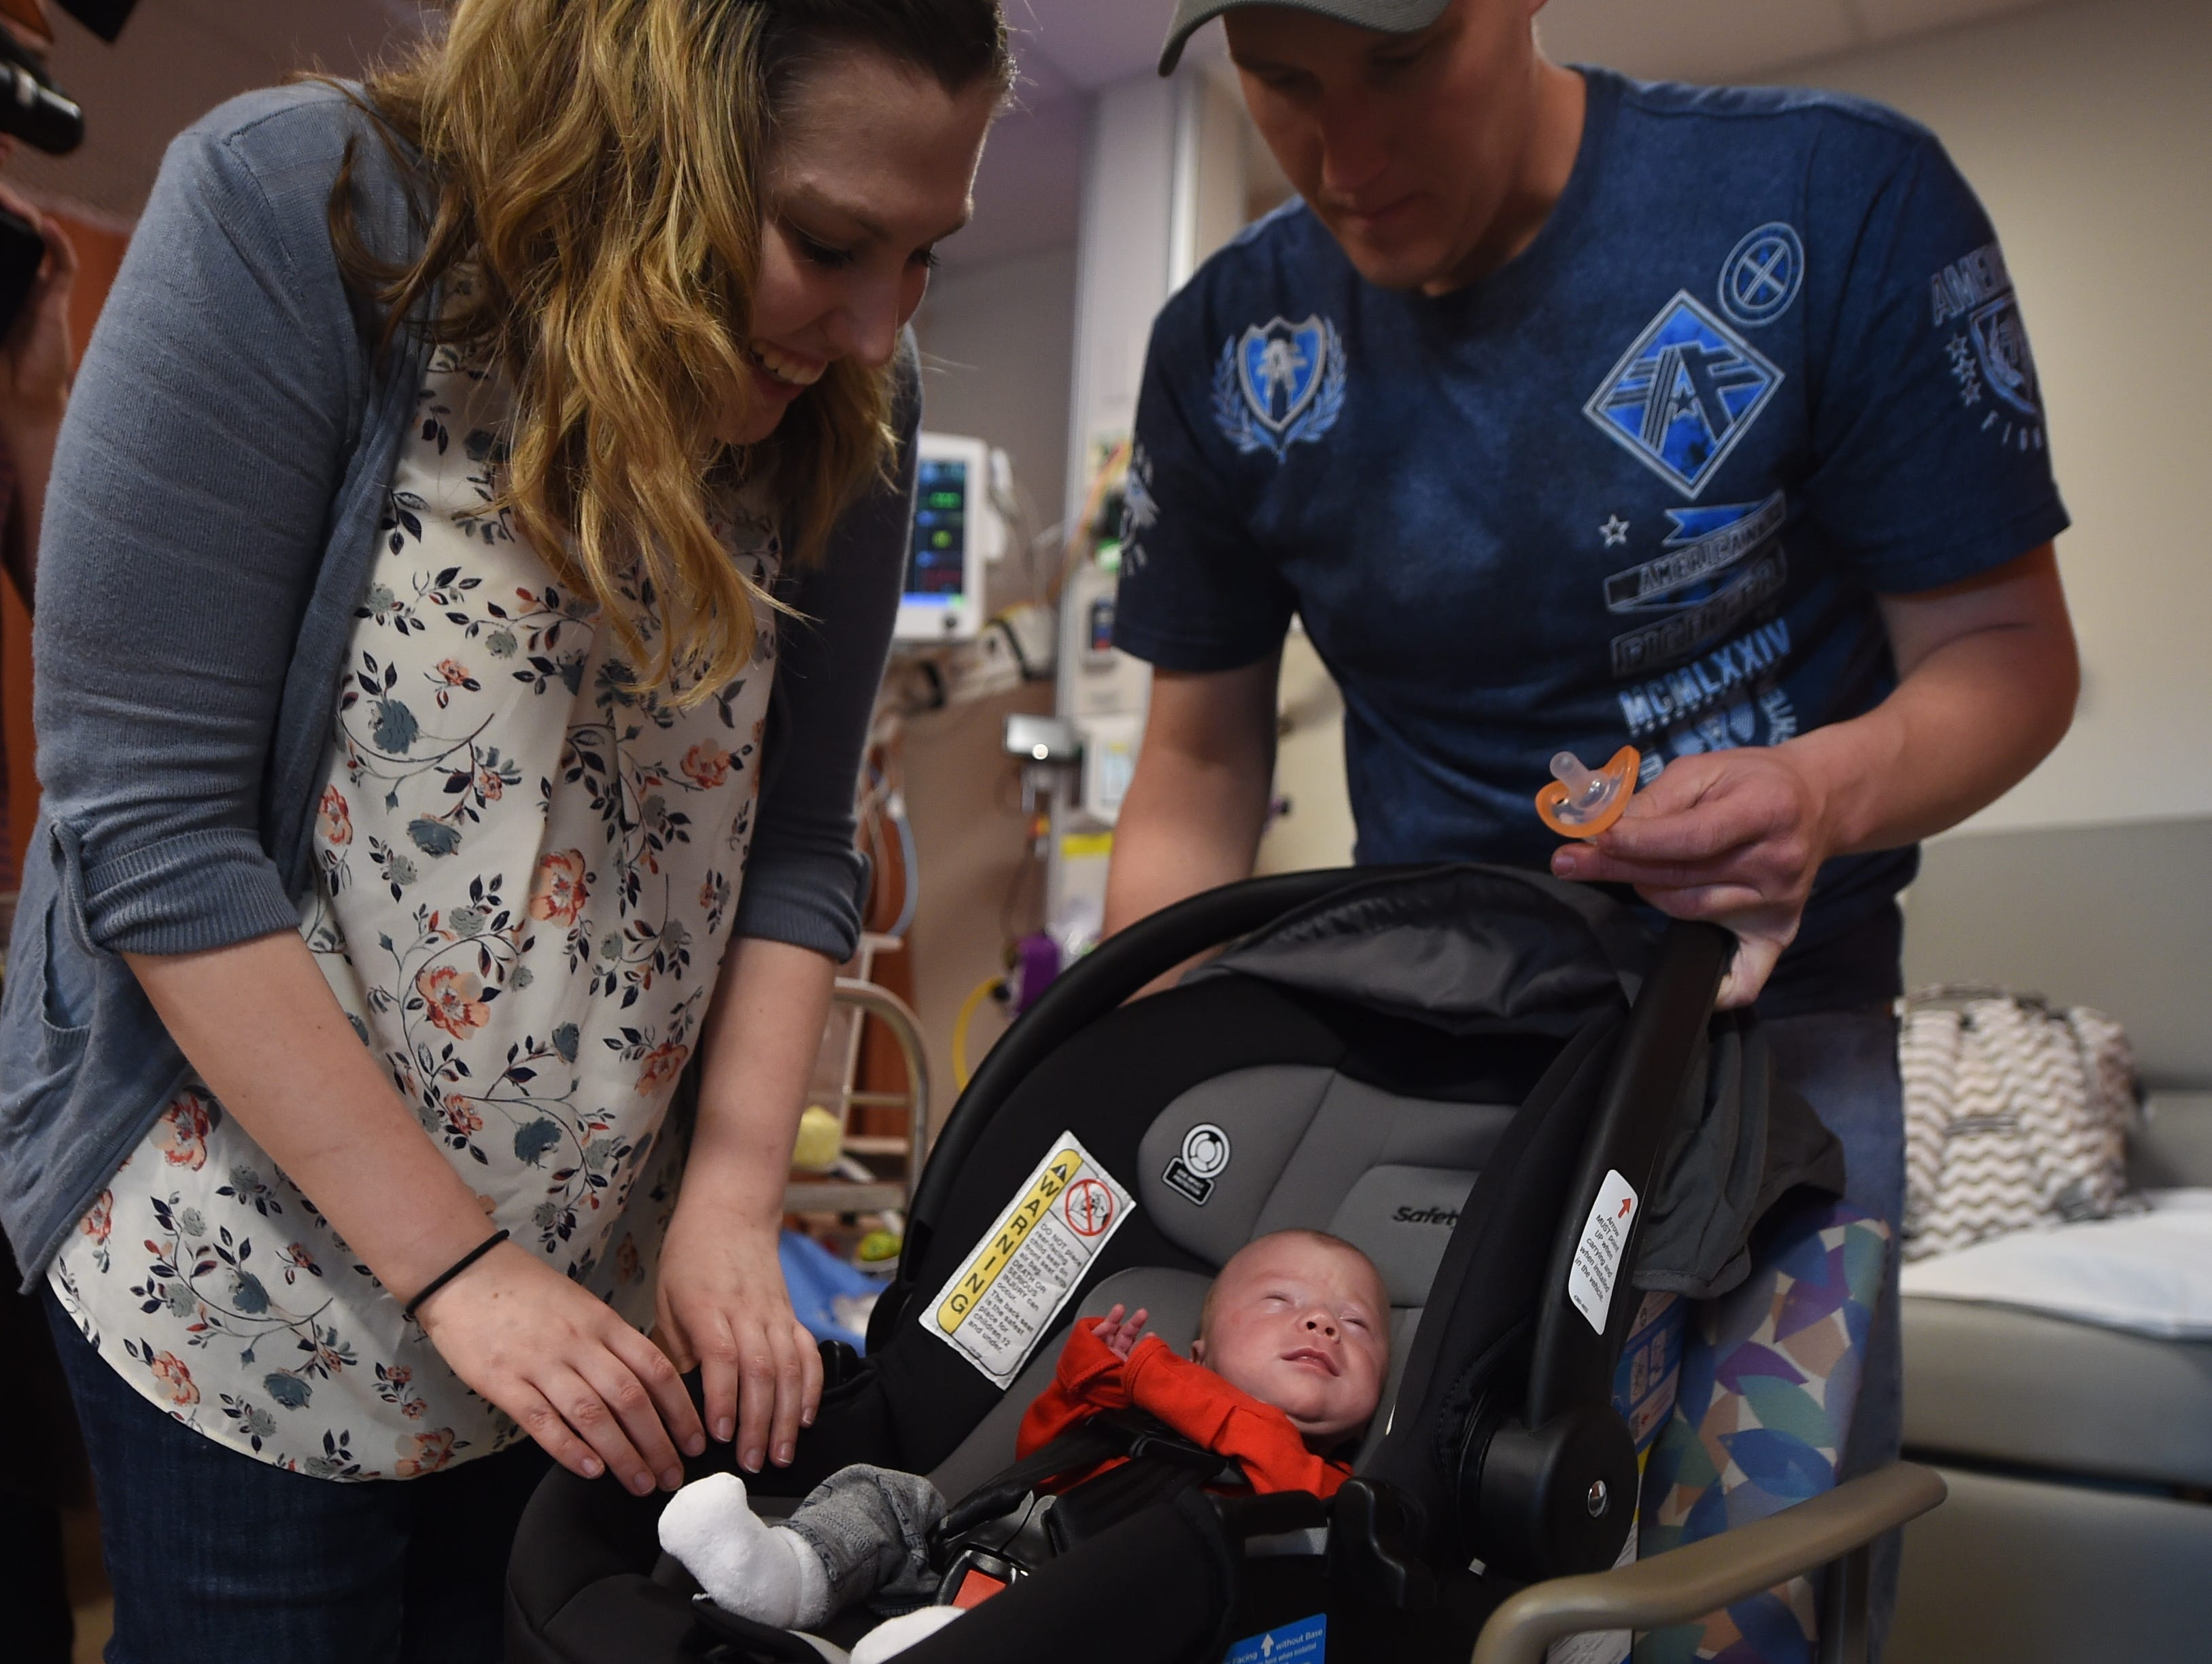 Jimmy Brown and Mary McDannell strap their son Liam McDannell inside his car seat Liam was born on New Year's Day, York County's first born child for 2019. On Tuesday, April 9 graduated from the NICU and would visit his home in Adams County for the first time.